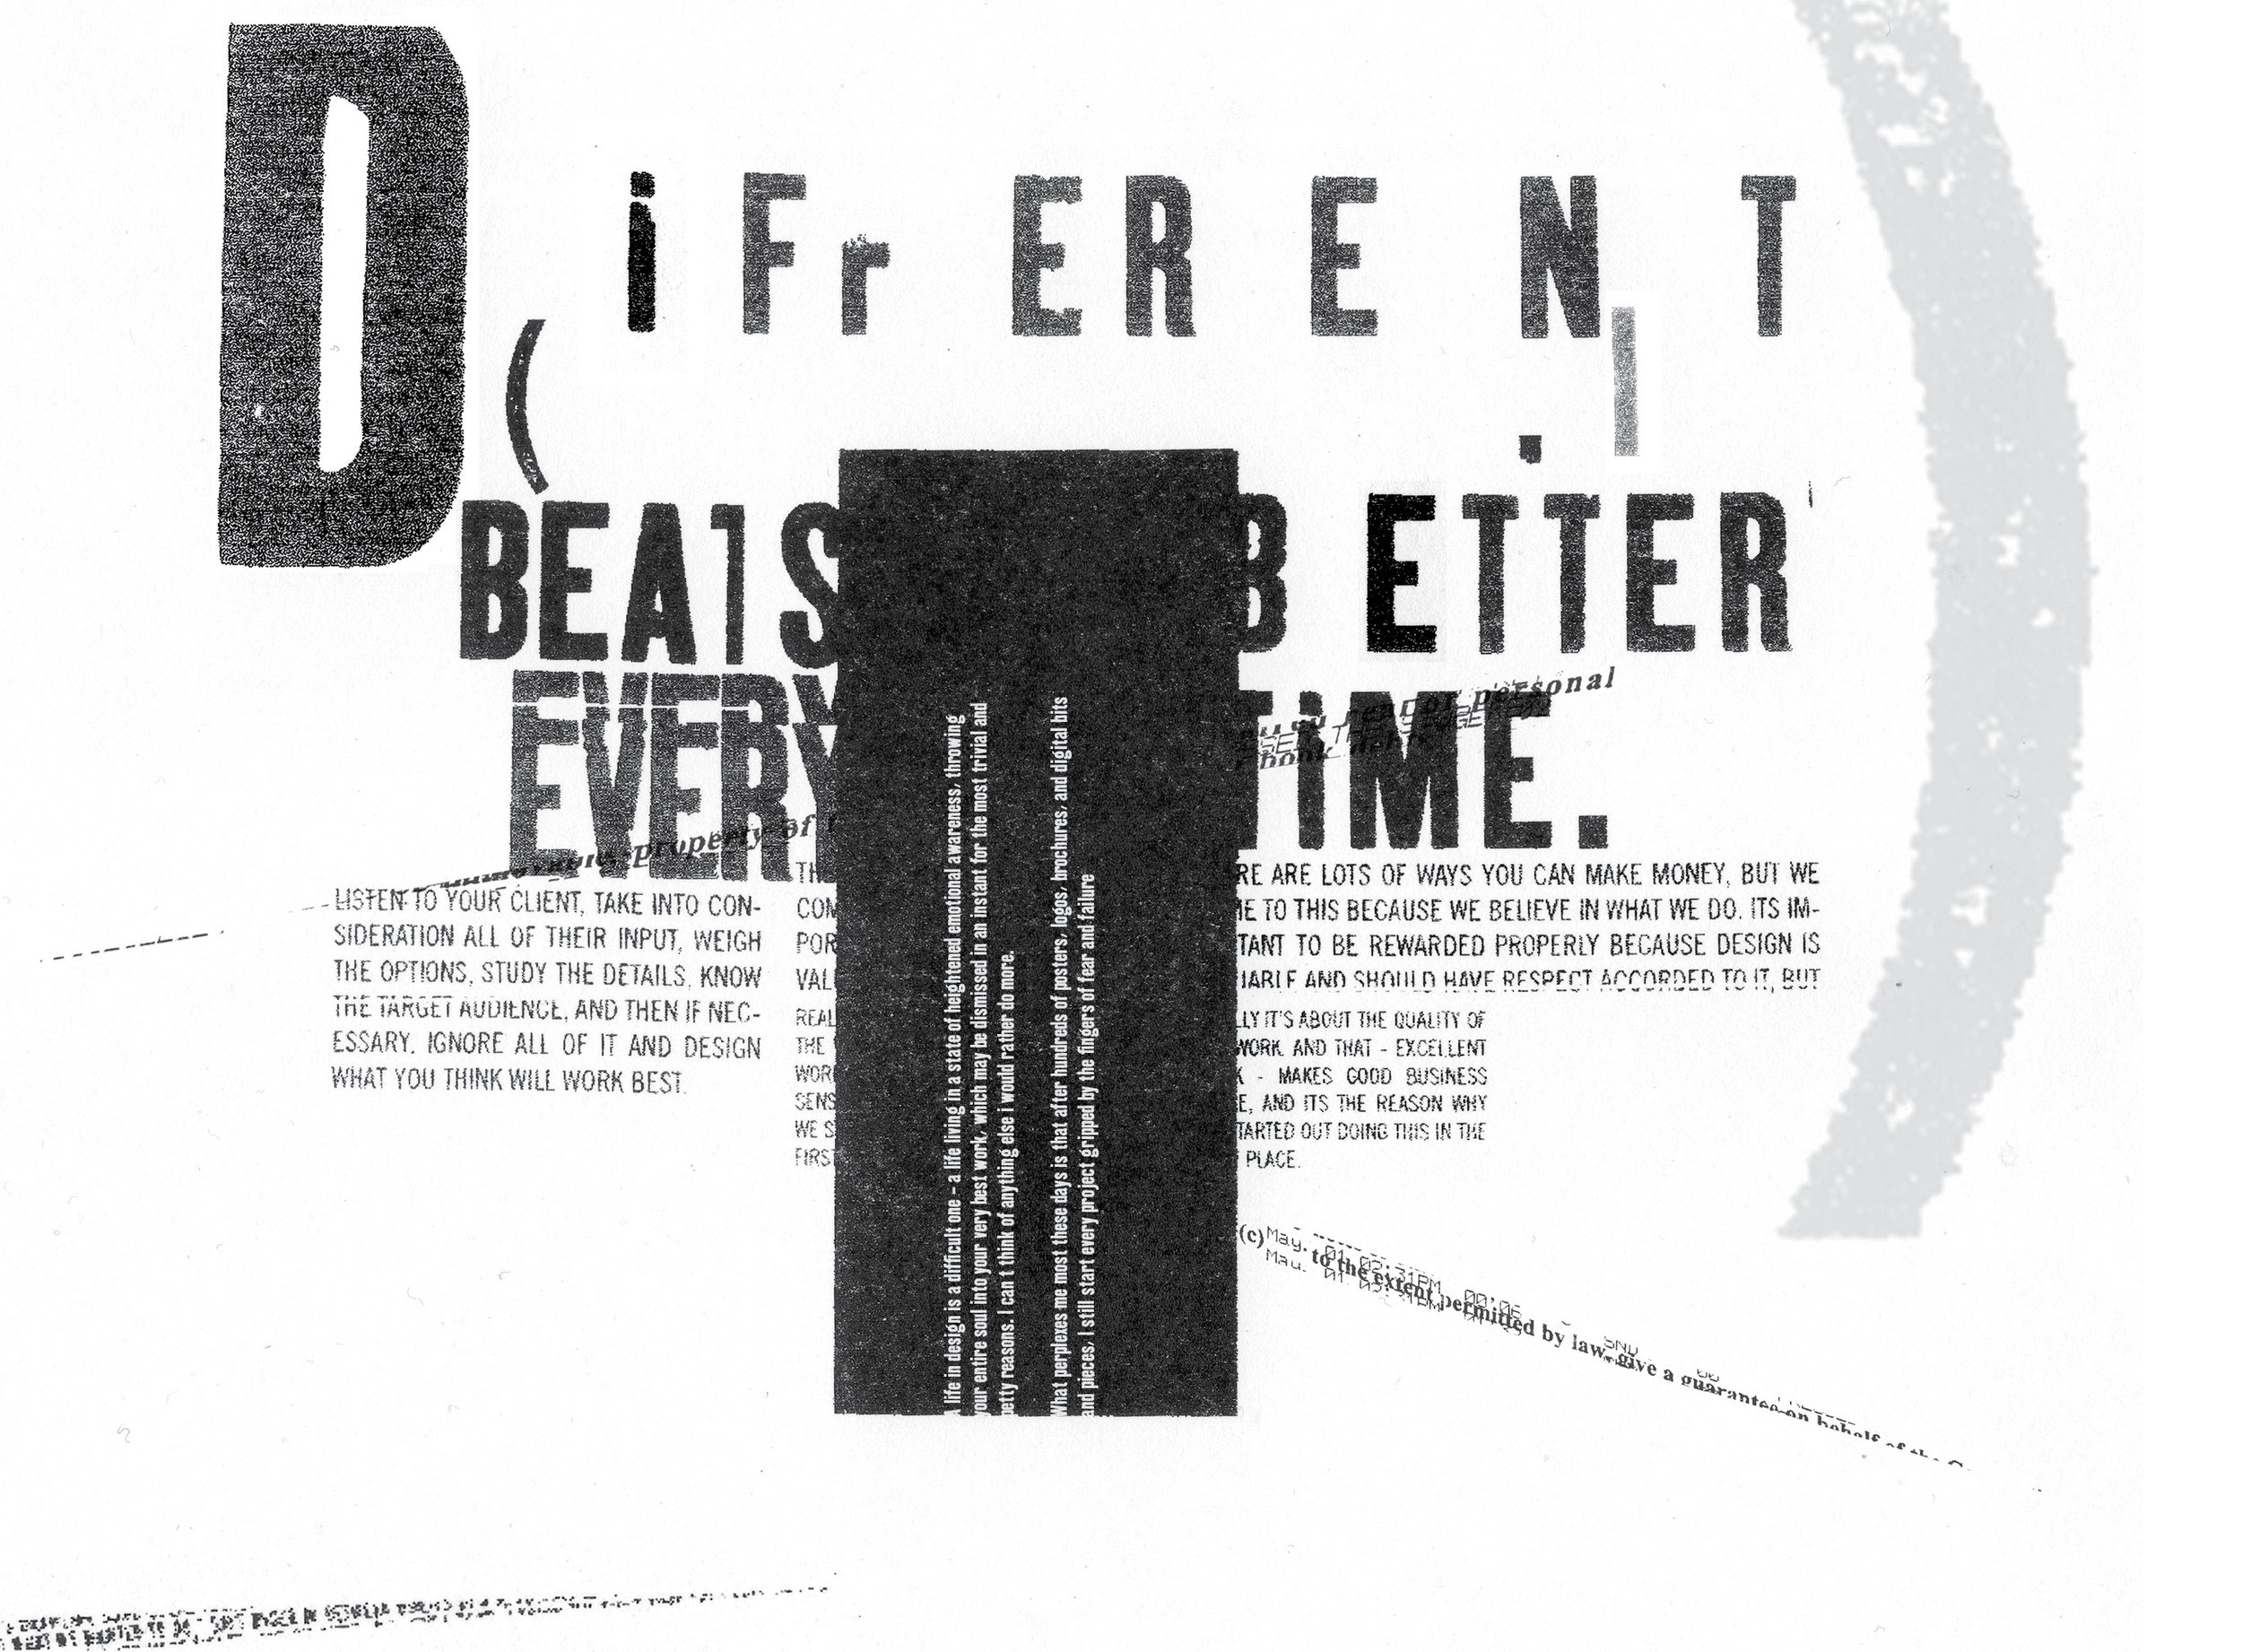 Different Beats Better Everytime